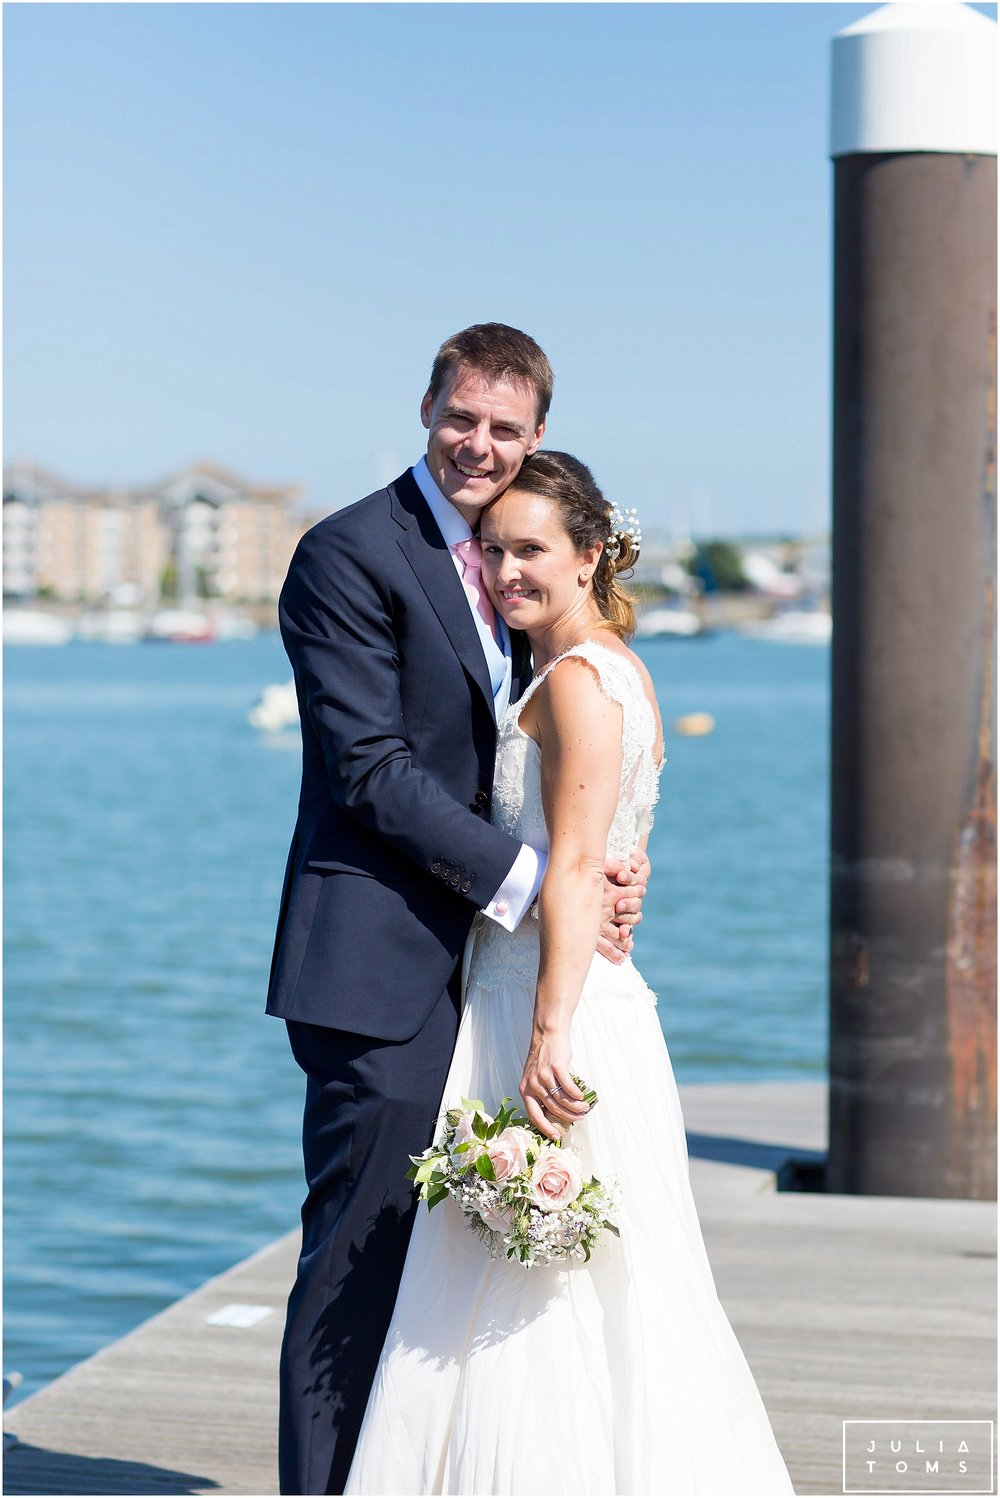 julia_toms_chichester_wedding_photographer_portsmouth_040.jpg